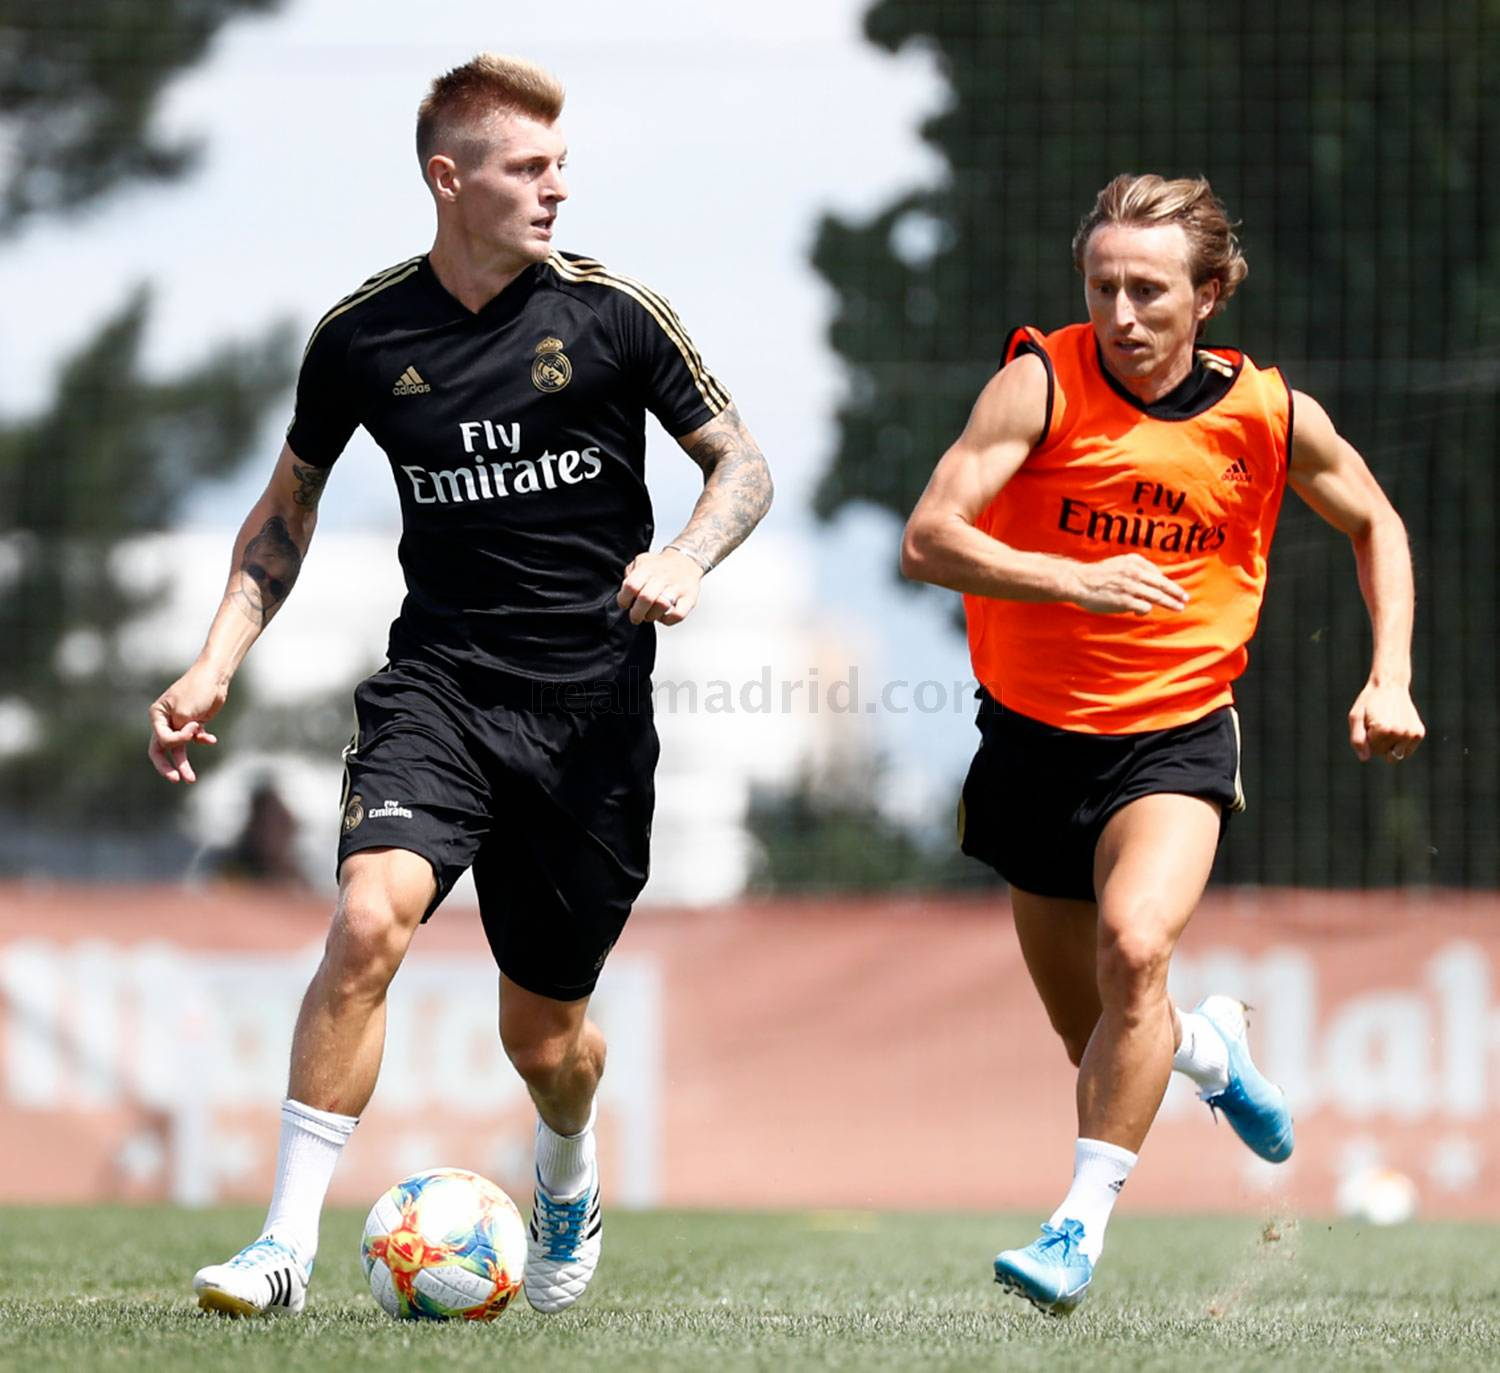 Real Madrid - Entrenamiento del Real Madrid  - 09-08-2019